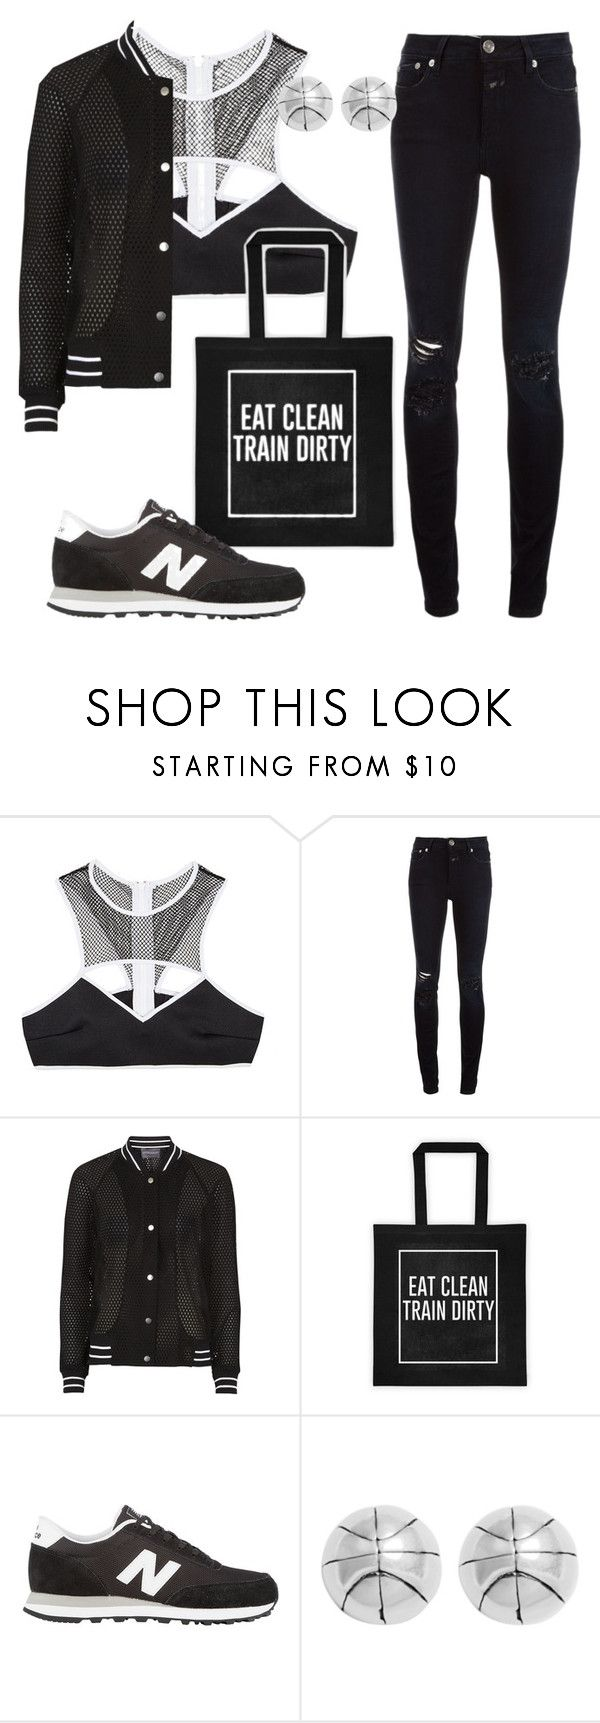 """Maybe"" by eileenelizabeth ❤ liked on Polyvore featuring This Is a Love Song, Closed, Antipodium, New Balance, Journee Collection and polyvoreeditorial"